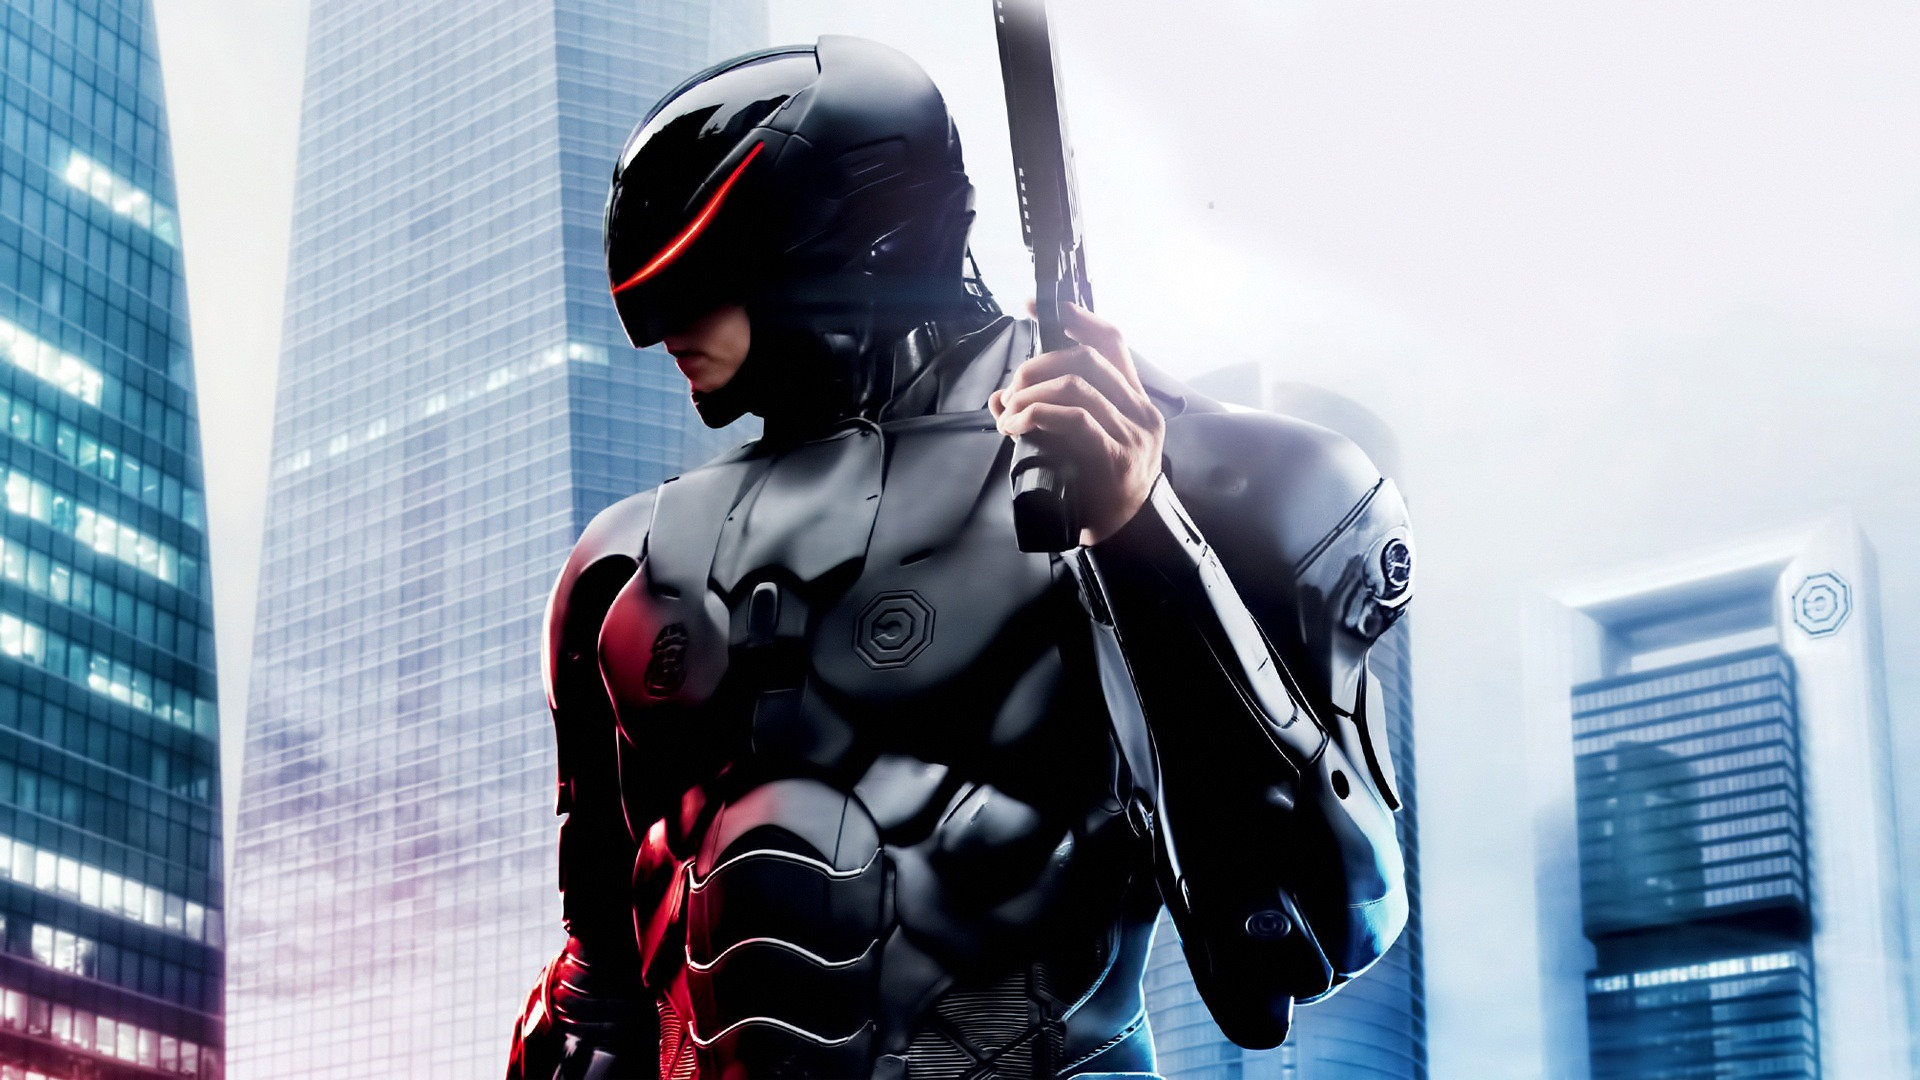 Robocop 2014 Main Review